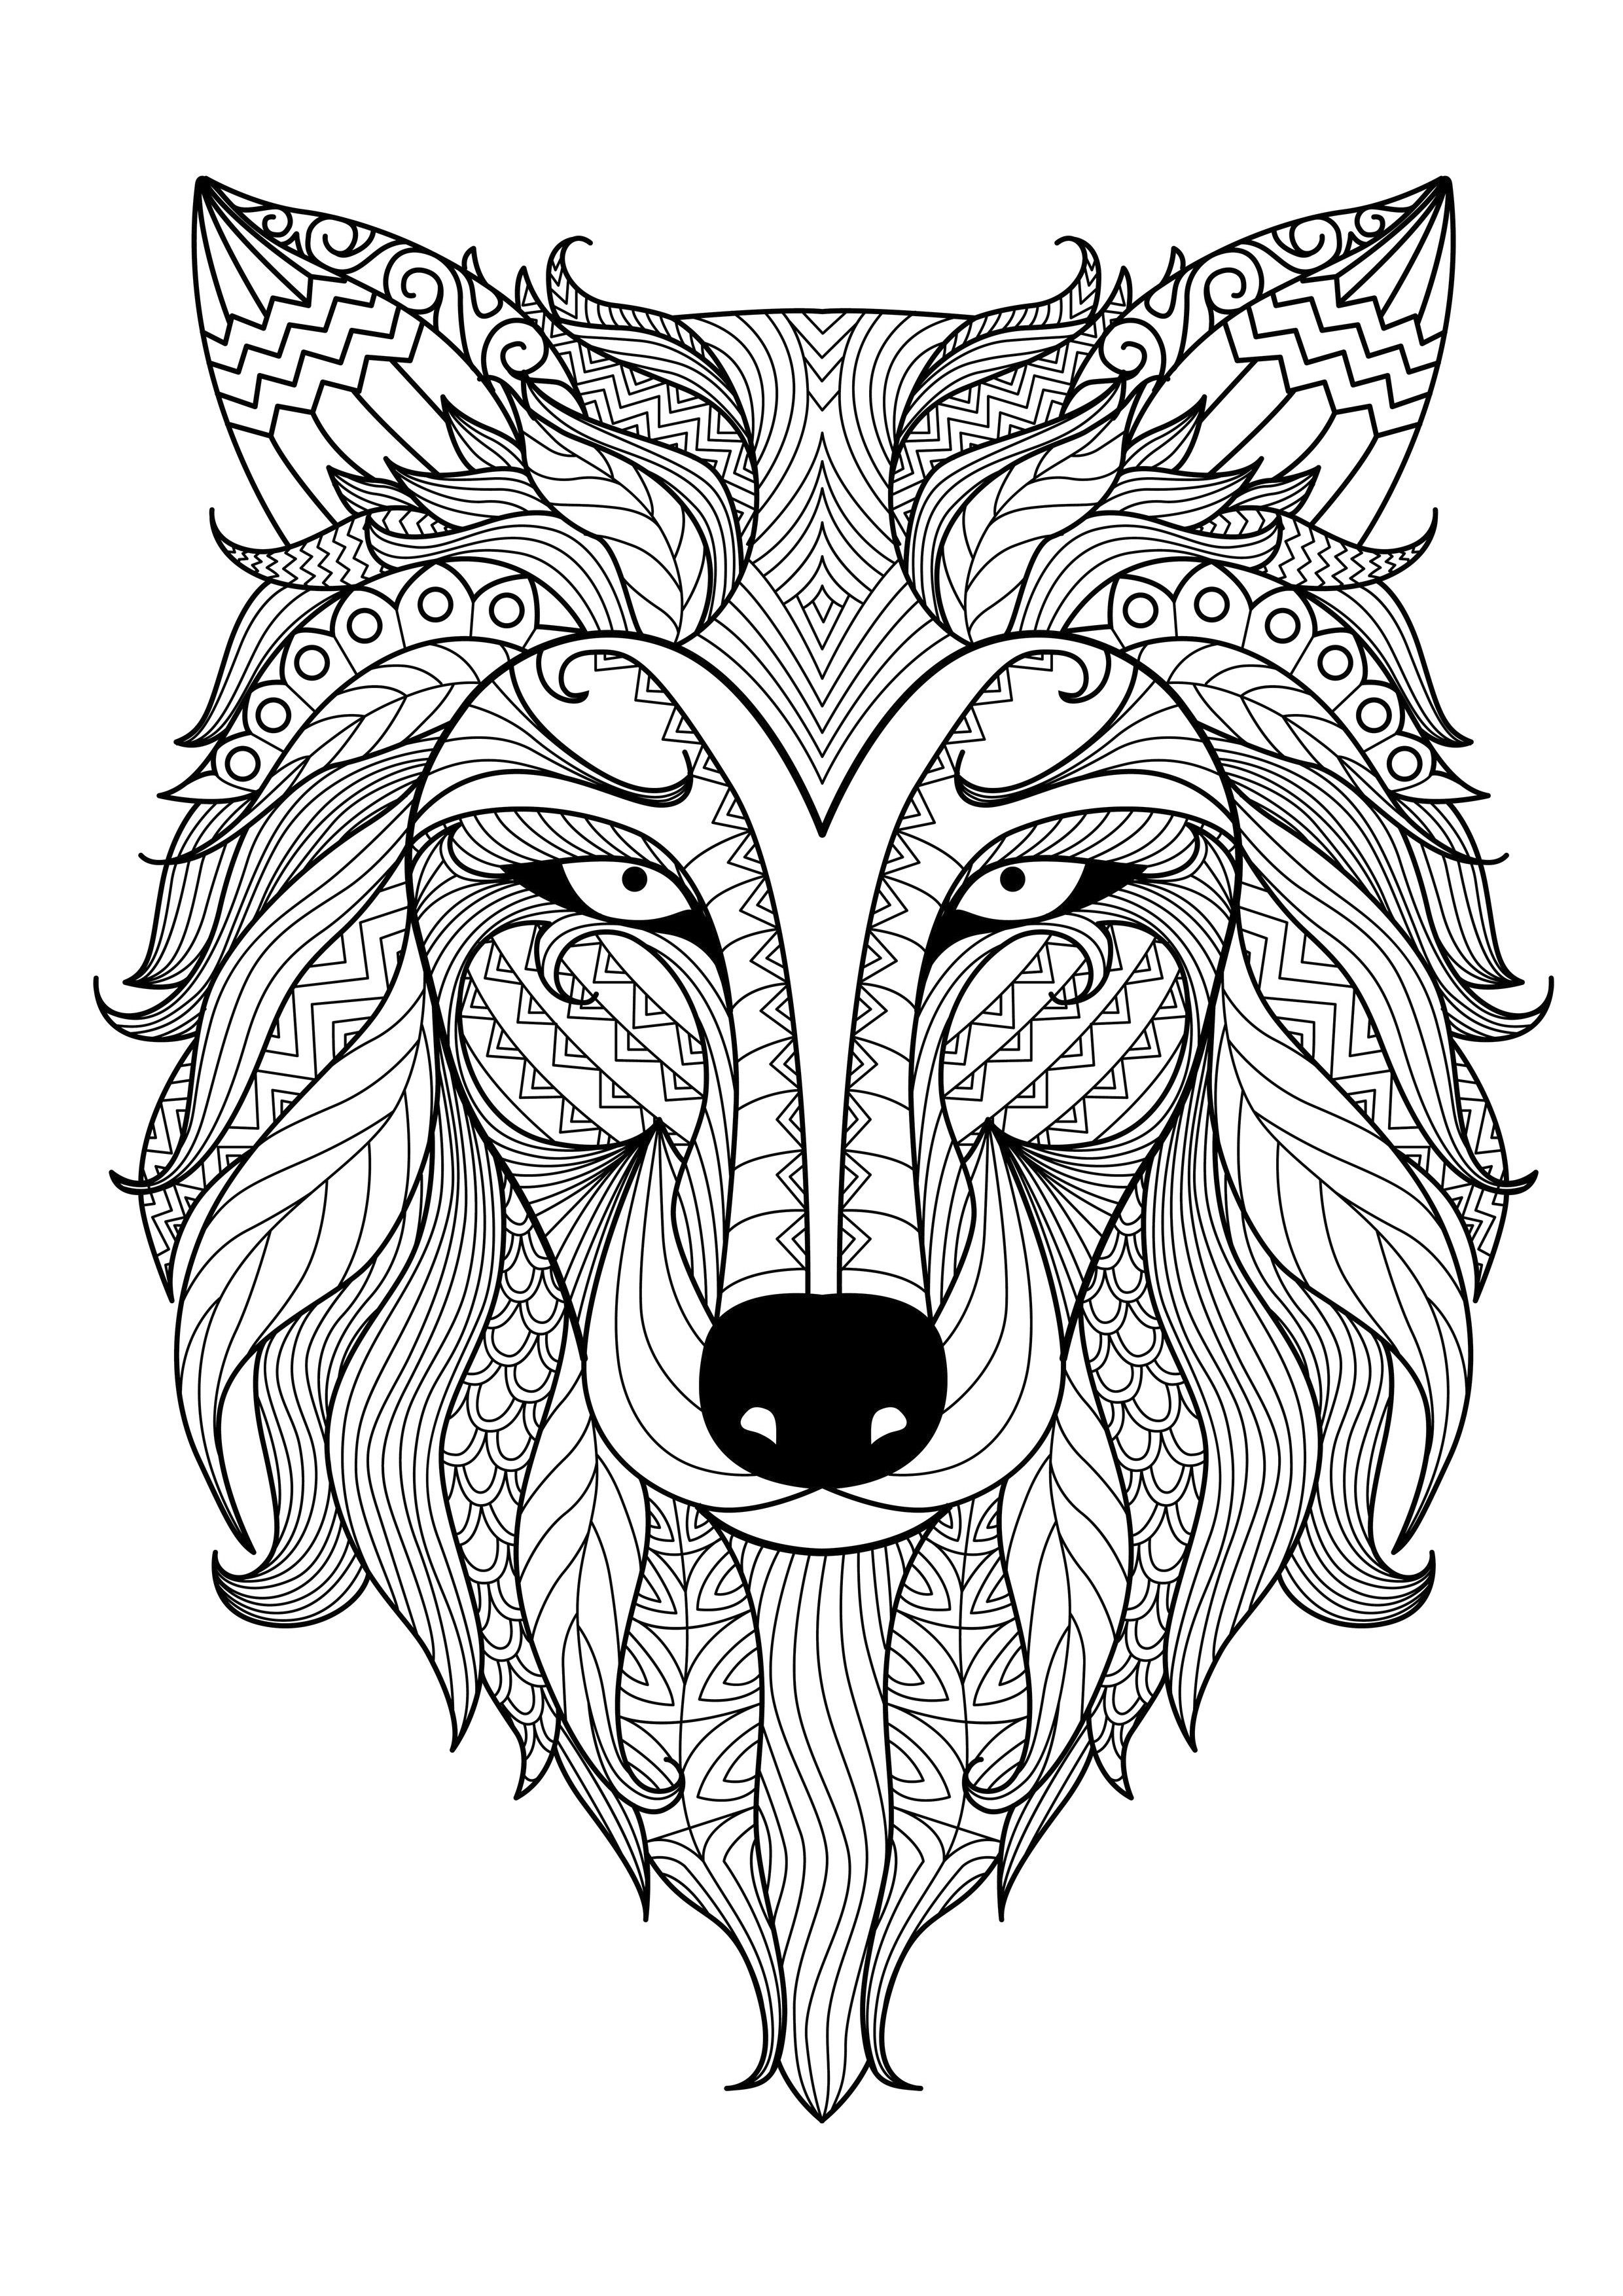 Animal Coloring Pages For Adults Coloriage Loup Coloriage Coloriage Zen